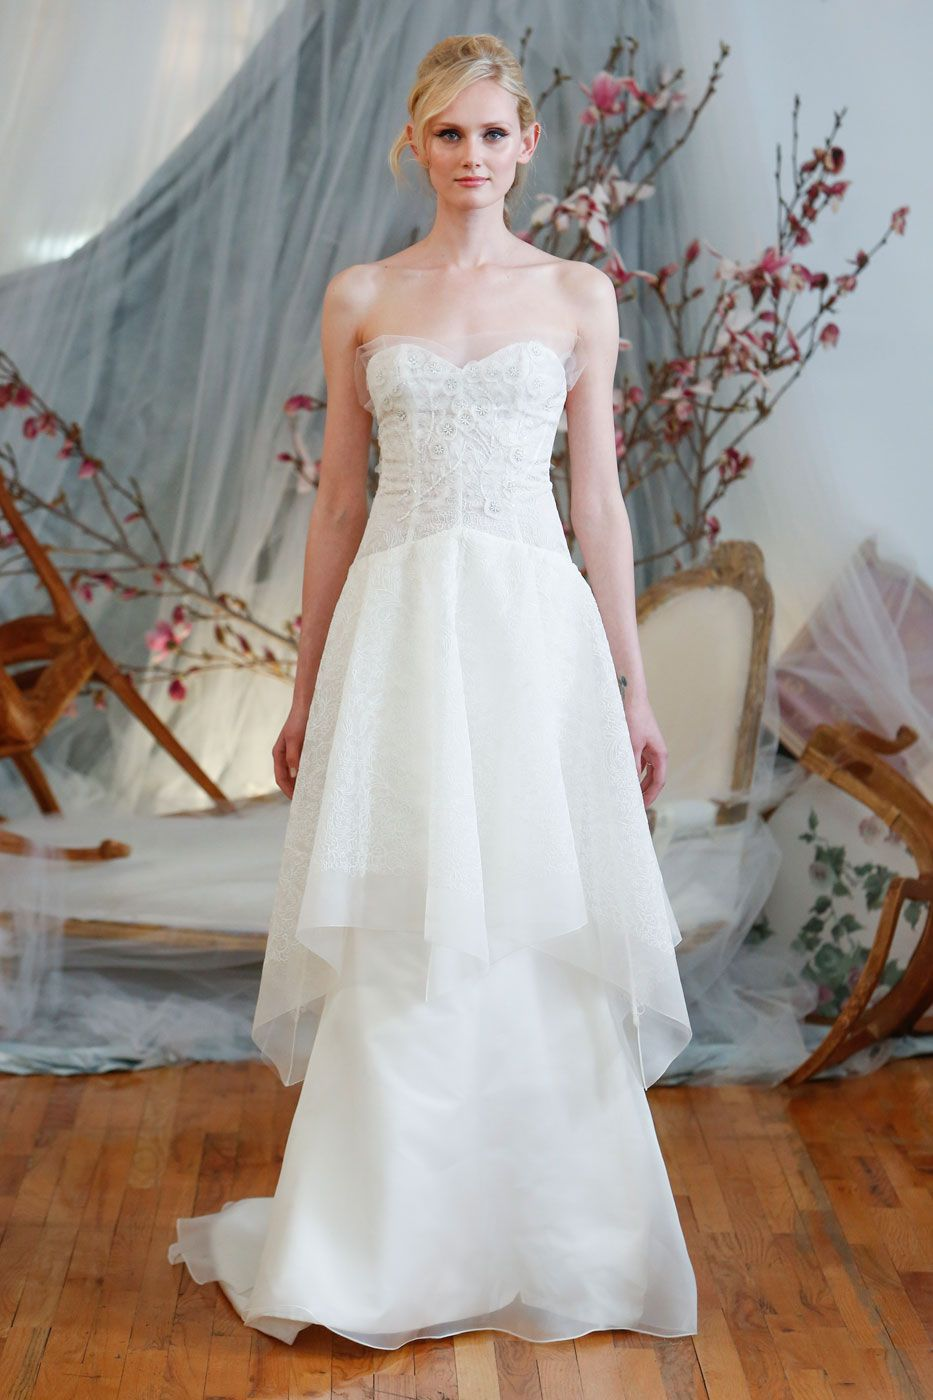 wedding dresses to inspire any modern bride wedding dress and